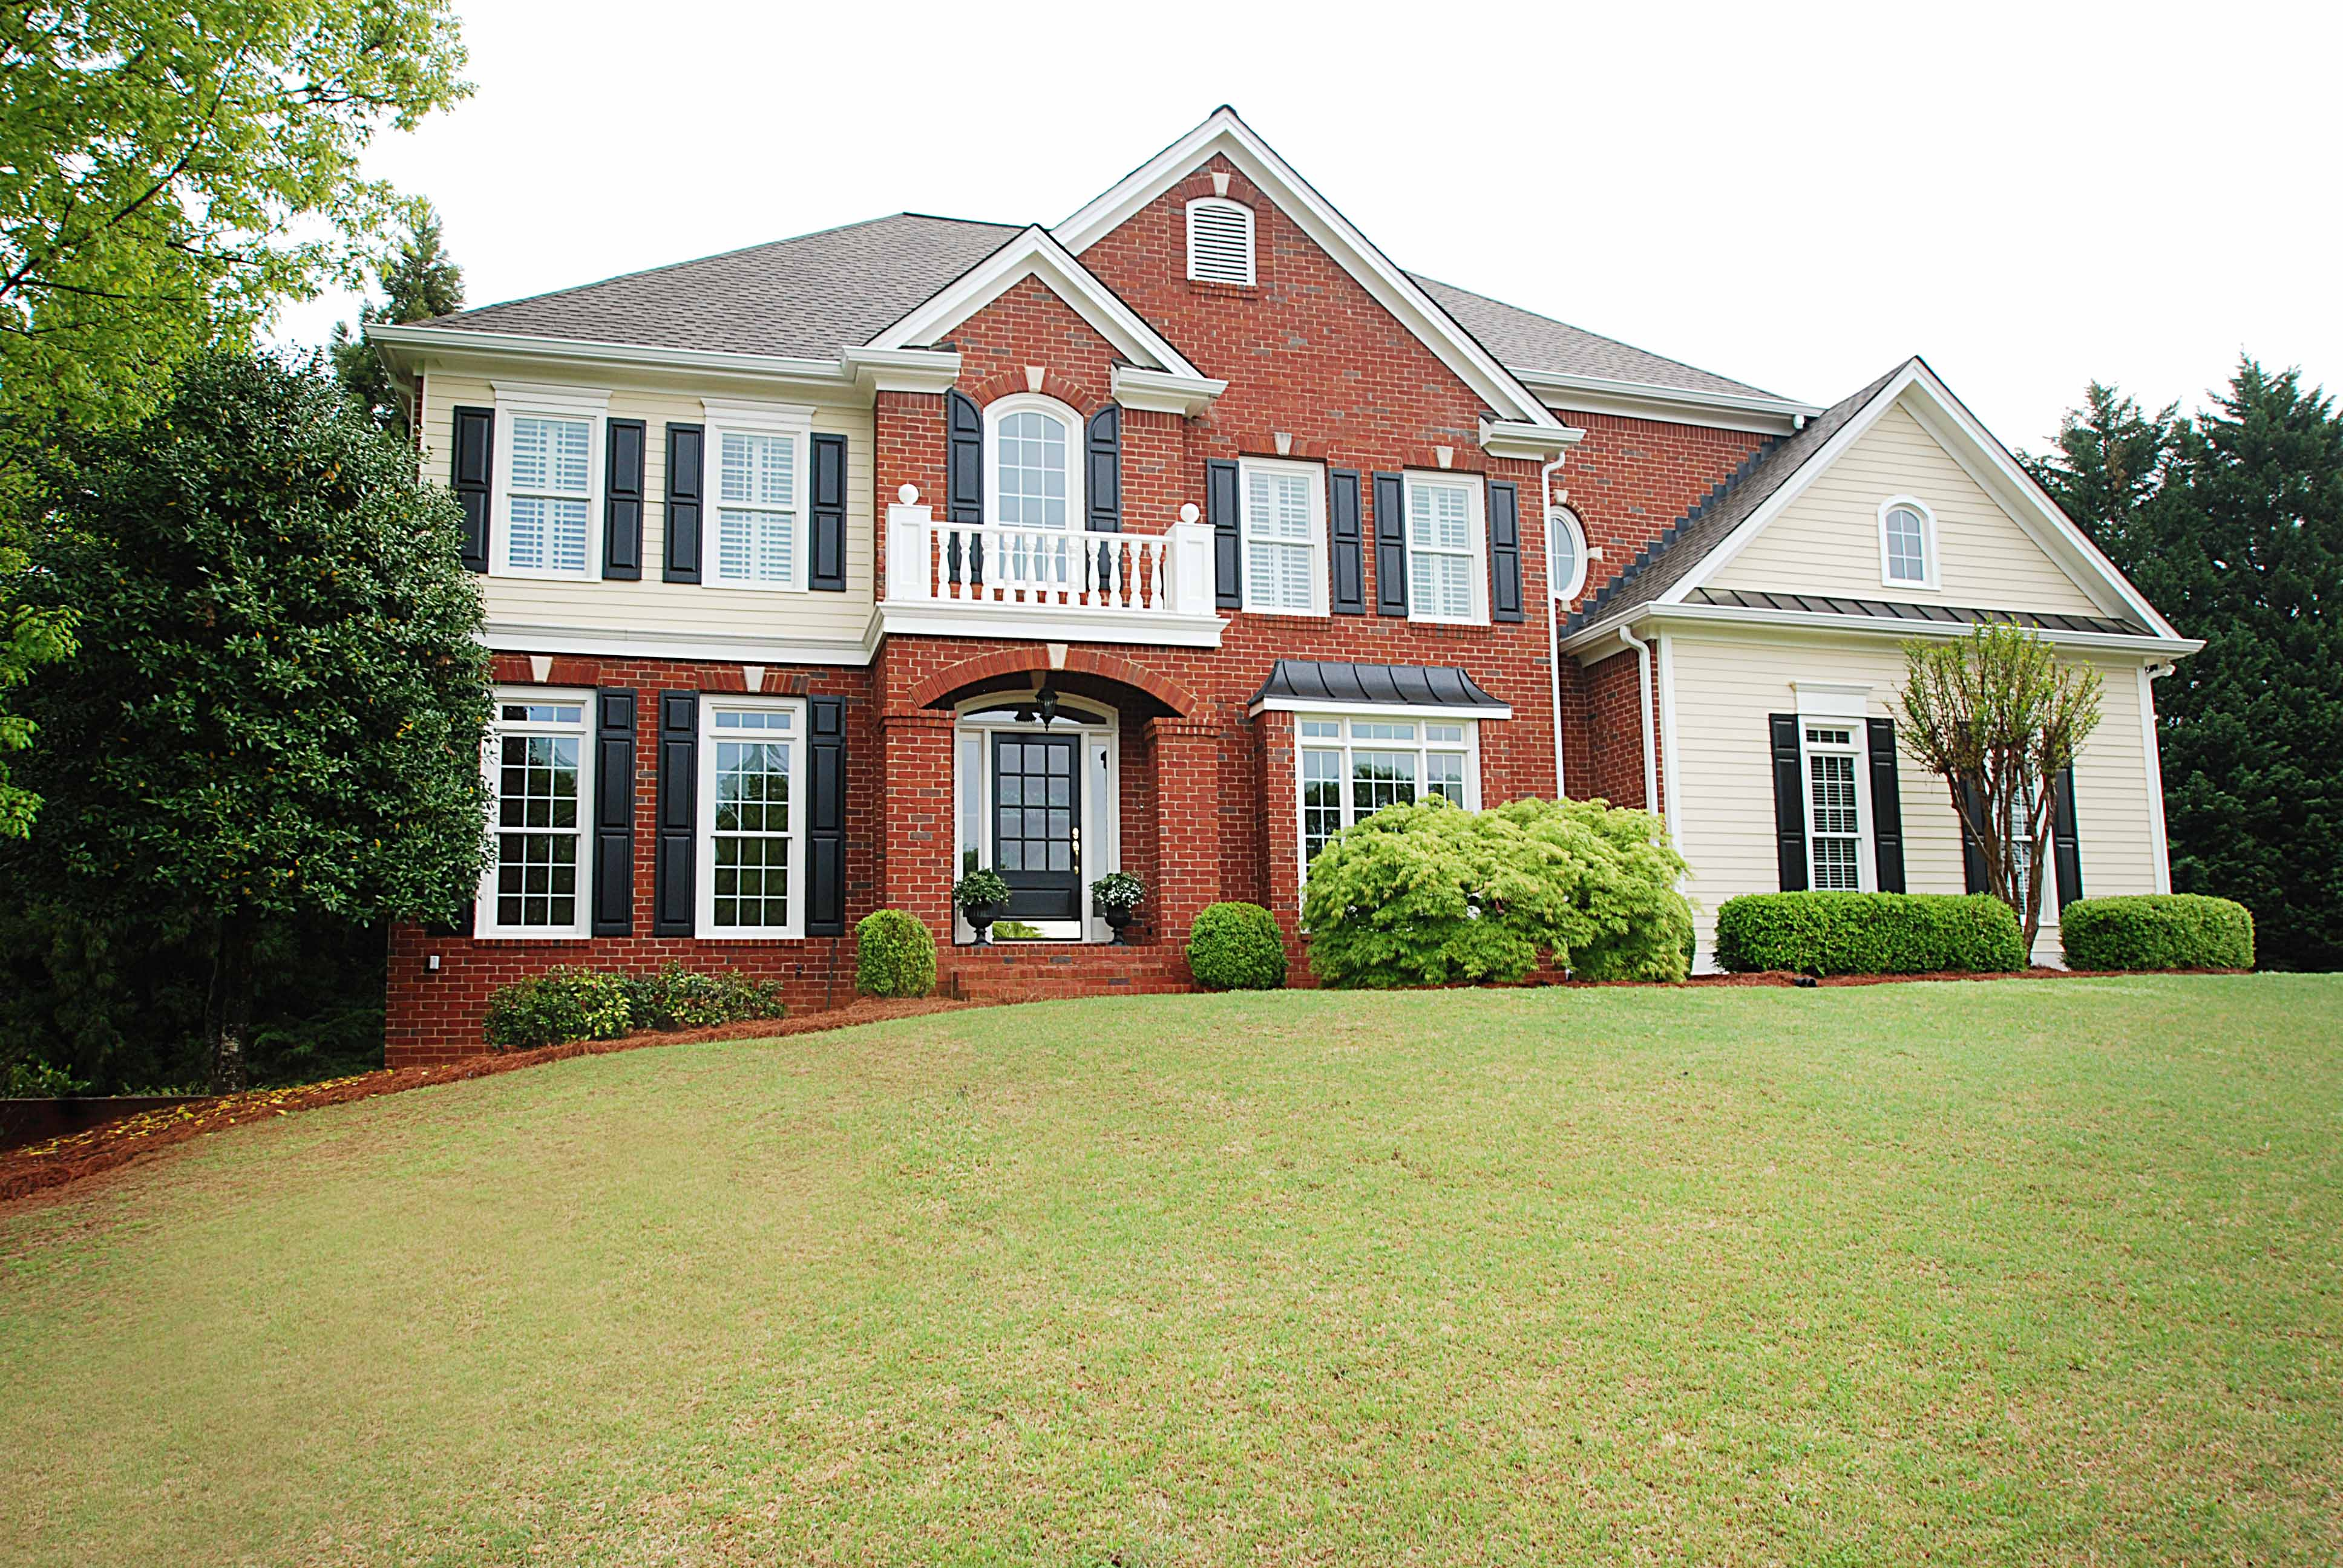 Single Family Home for Sale at Pristine Roswell Home 5005 Rosedown Place Roswell, Georgia 30076 United States